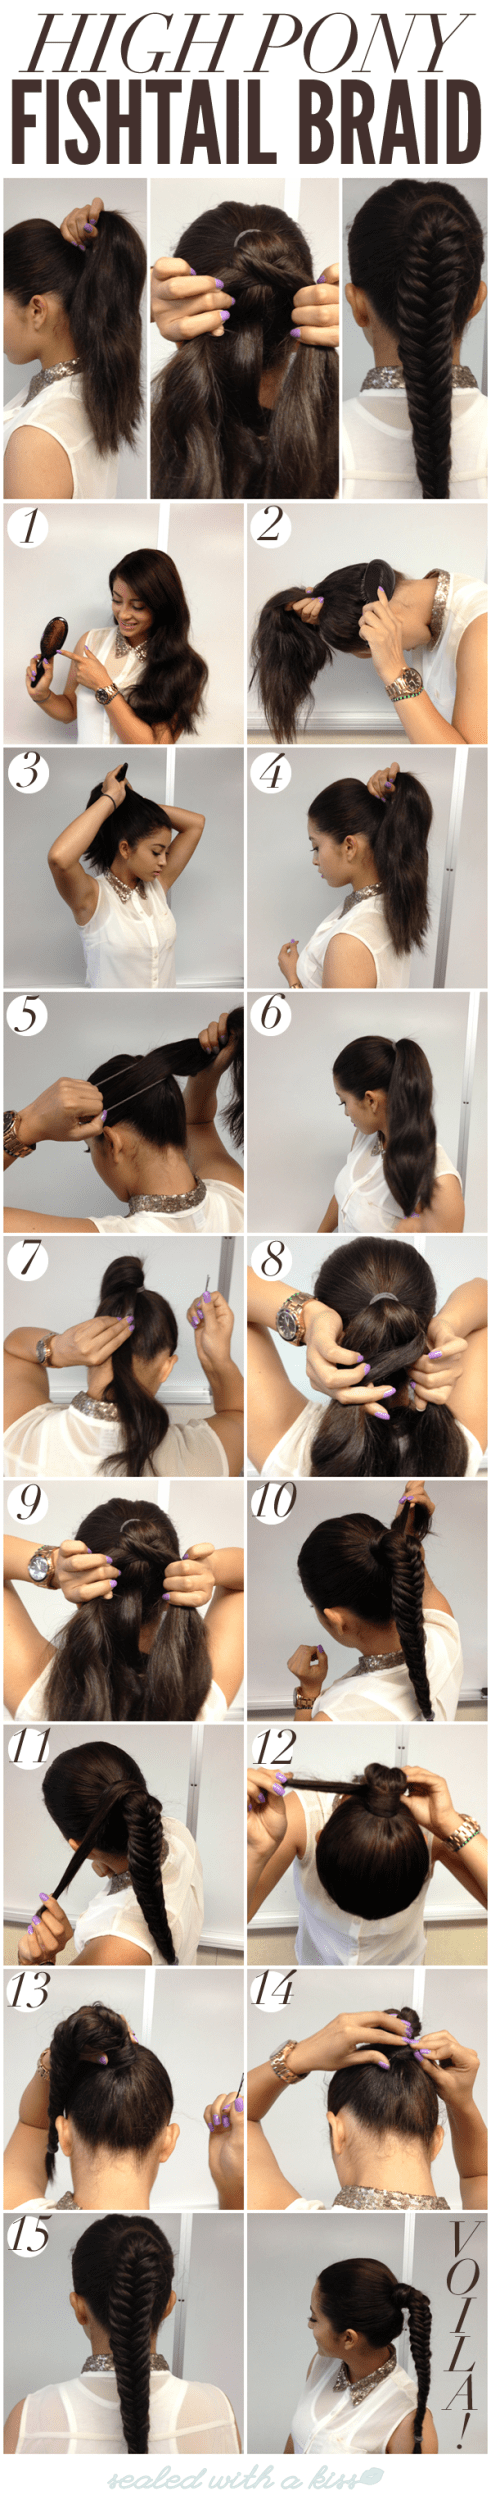 15 Simple Hairstyle Ideas Ready For Less Than 2 Minutes and Looks Fantastic